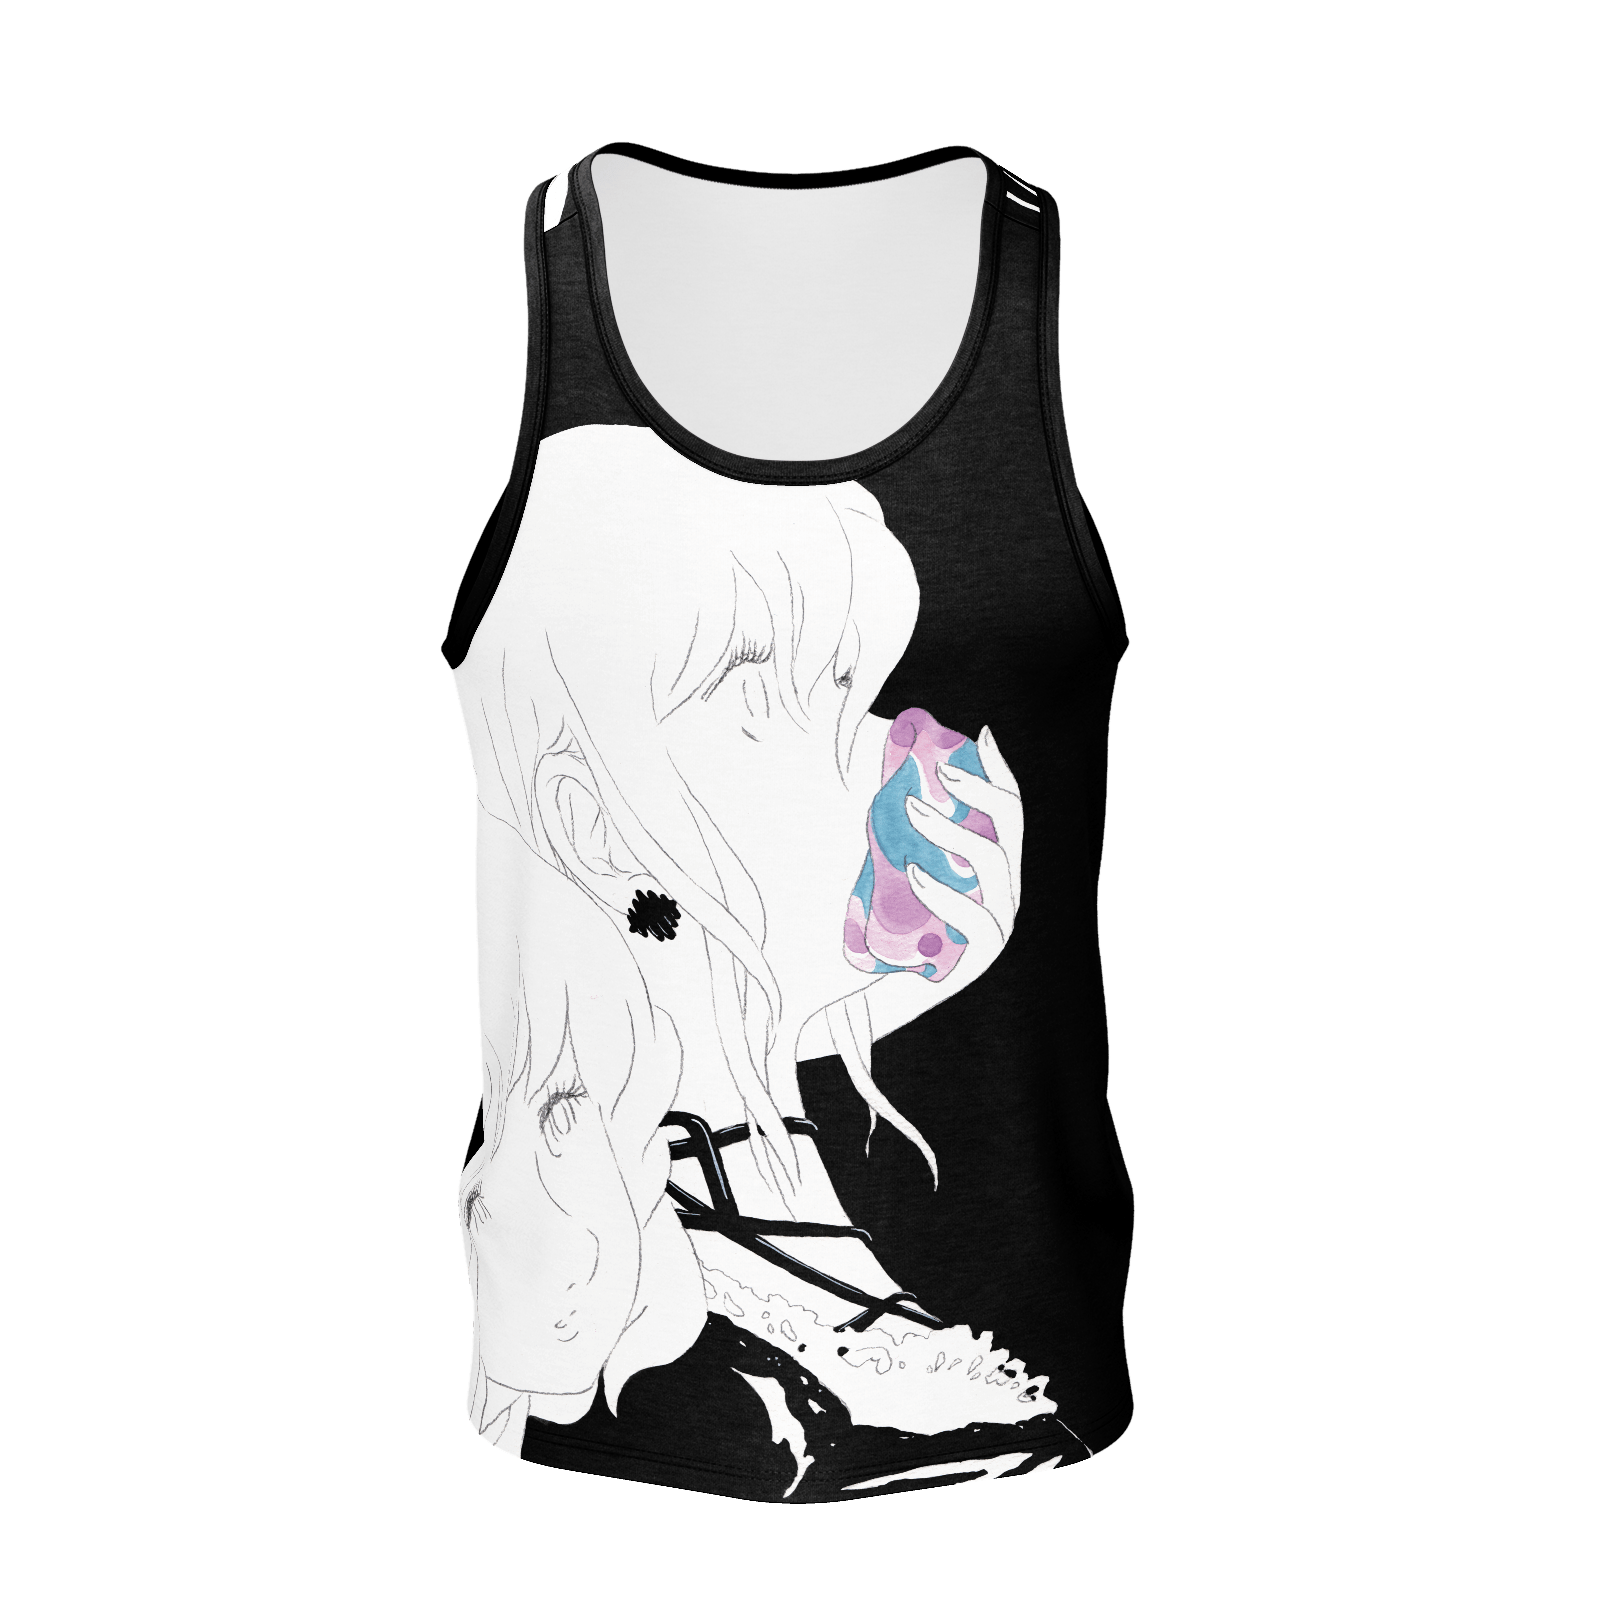 Paranoia Girls - tank top 2 sided - Betrayal - Poly 2019